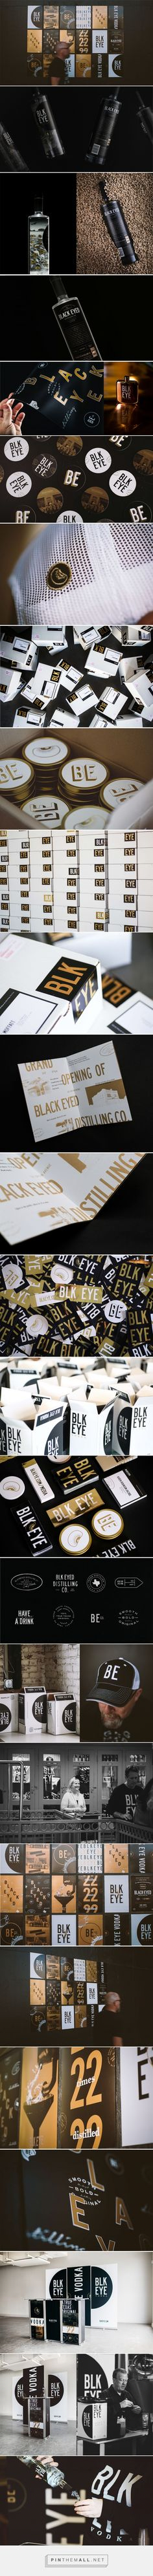 Blk Eye Branding on Behance- https://www.behance.net/gallery/54721633/Blk-Eye-Branding?tracking_source=curated_galleries_list... - a grouped images picture - Pin Them All